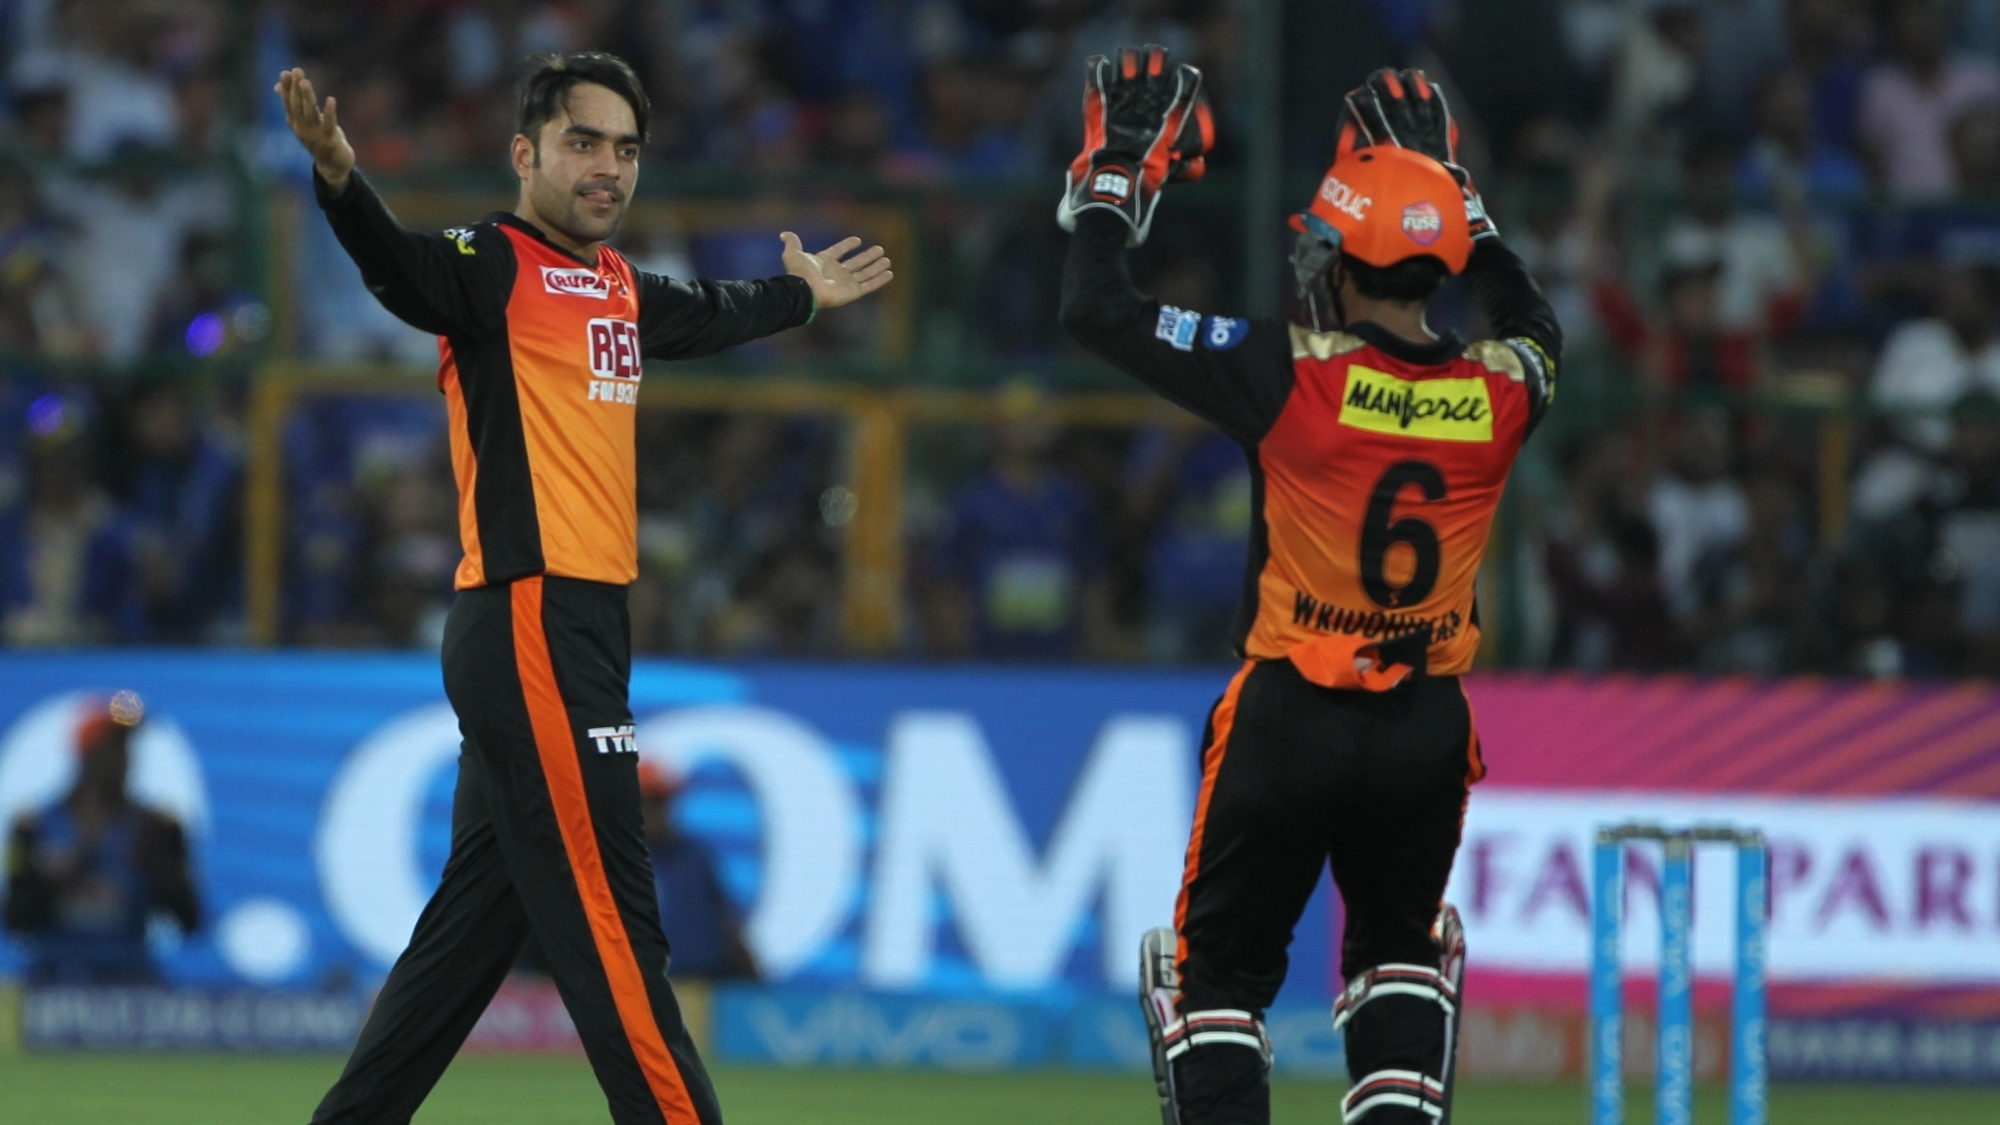 IPL 2018: Qualifier 2, SRH v KKR– Twitterverse goes berserk as Rashid Khan's all-round show puts SRH in IPL 11 final